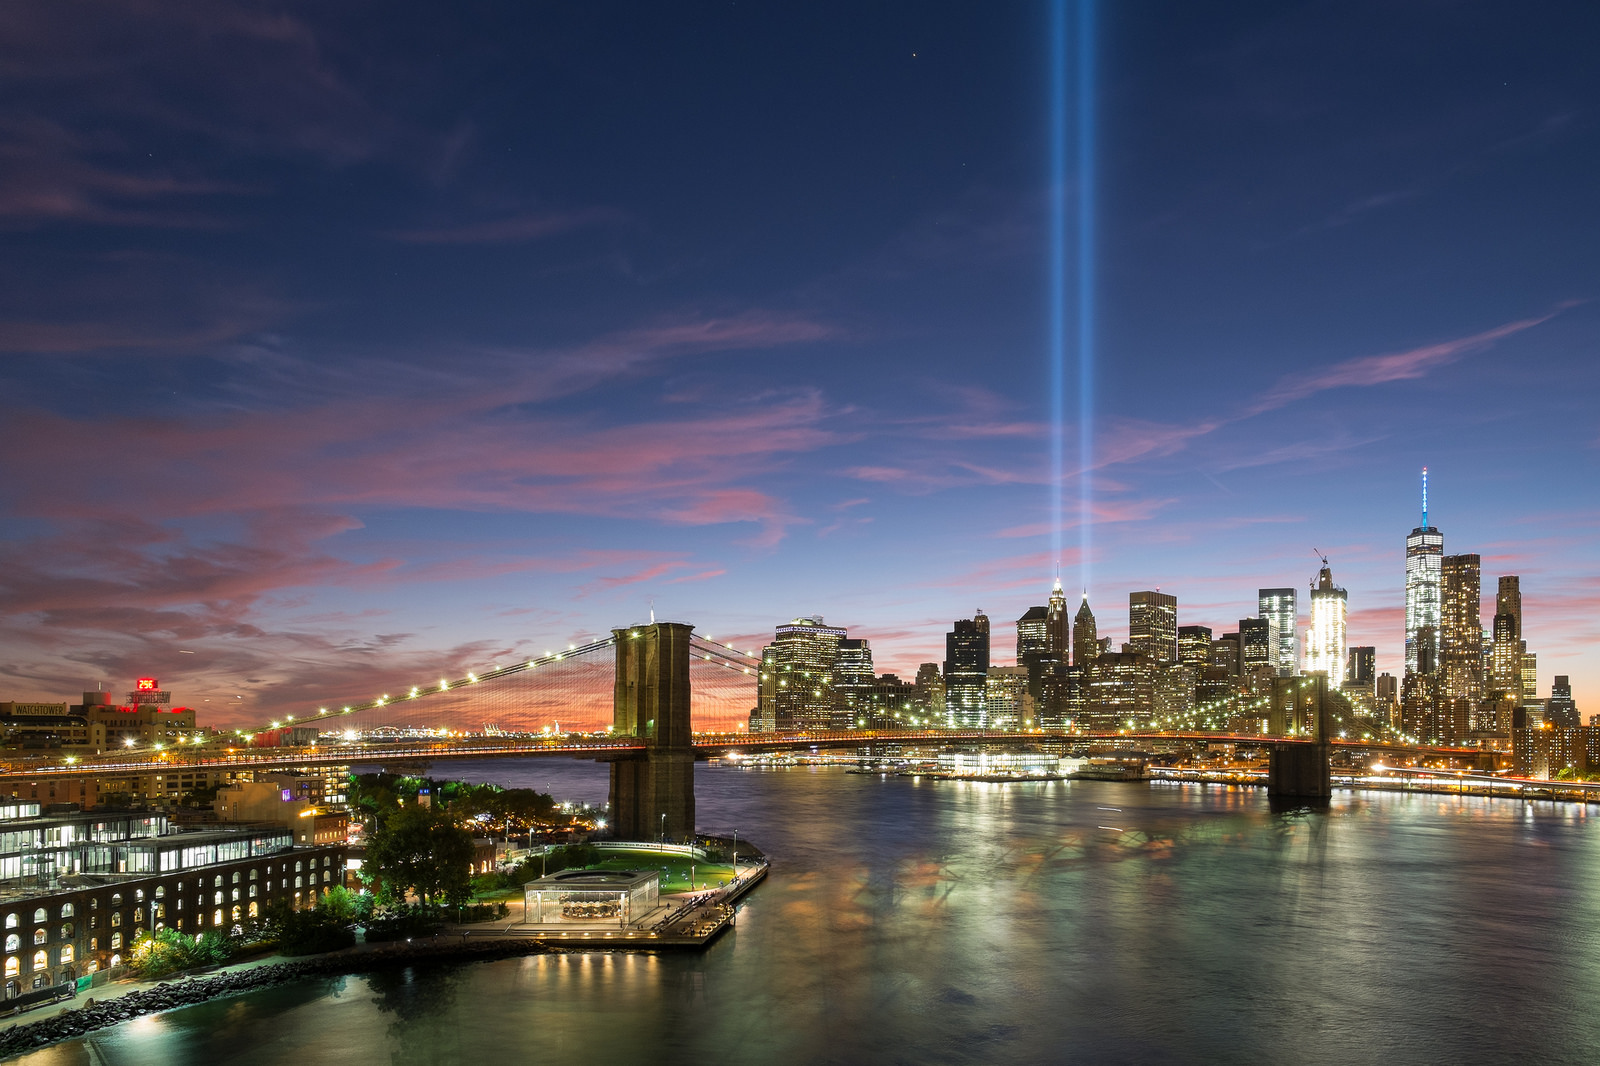 """Tribute in Light""  September 11, 2016. New York City  Fujifilm XPro1, 14mm, f/8, 10s, ISO 400"